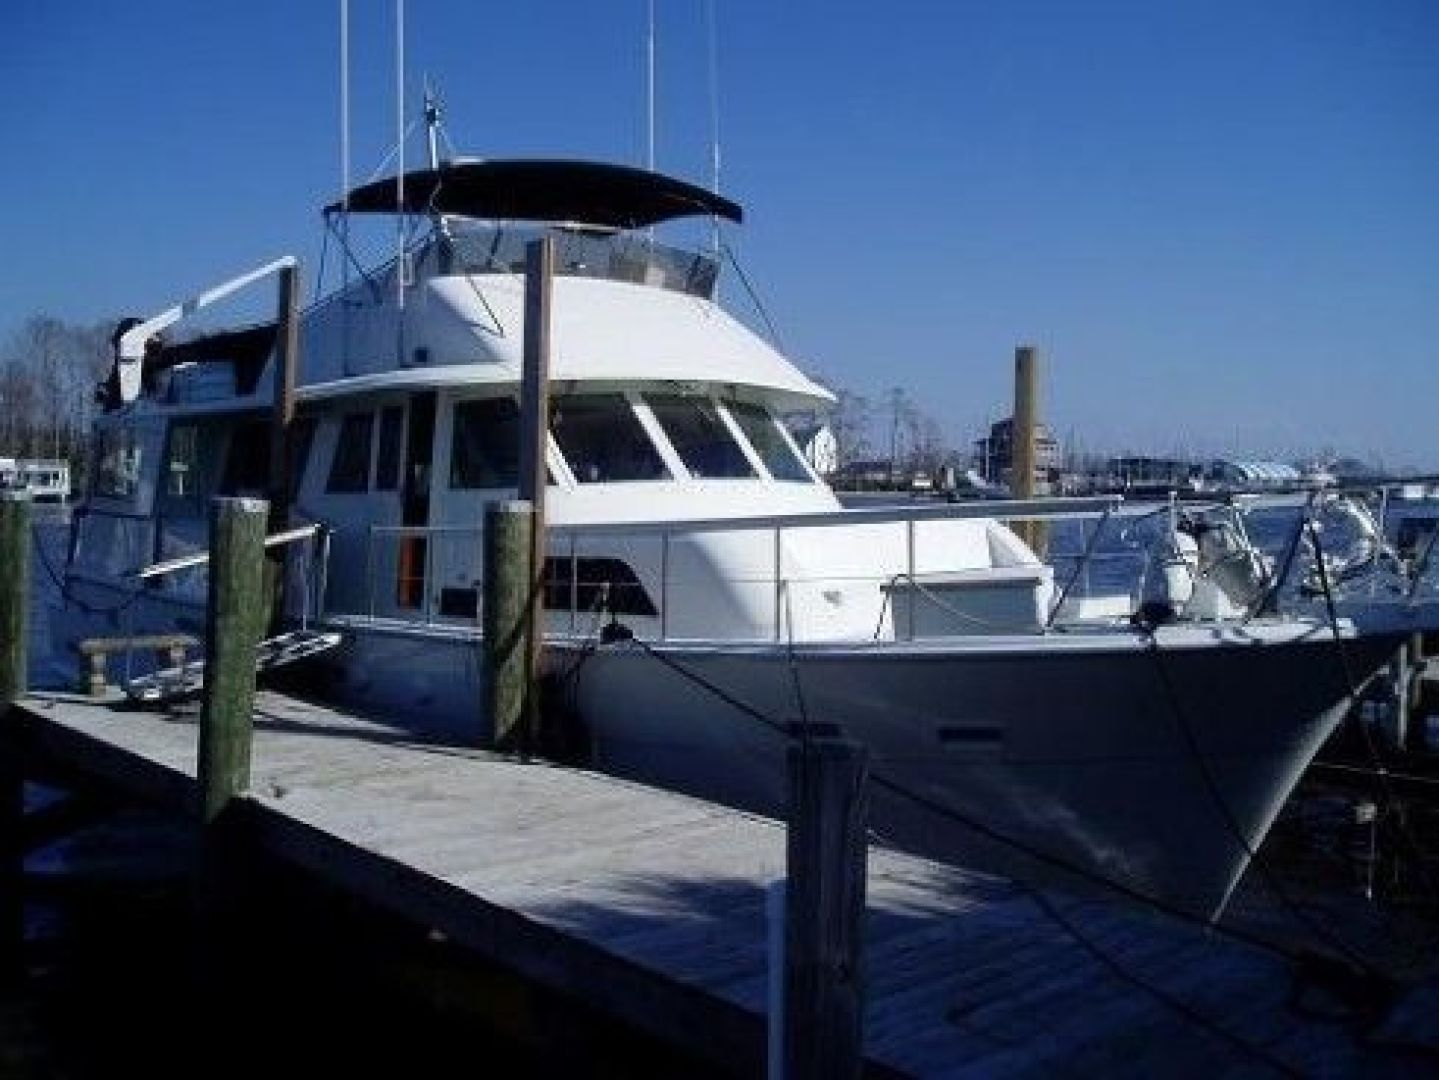 Hatteras-Cockpit Motor Yacht 1981 -Madisonville-Louisiana-United States-At the Dock-200724 | Thumbnail